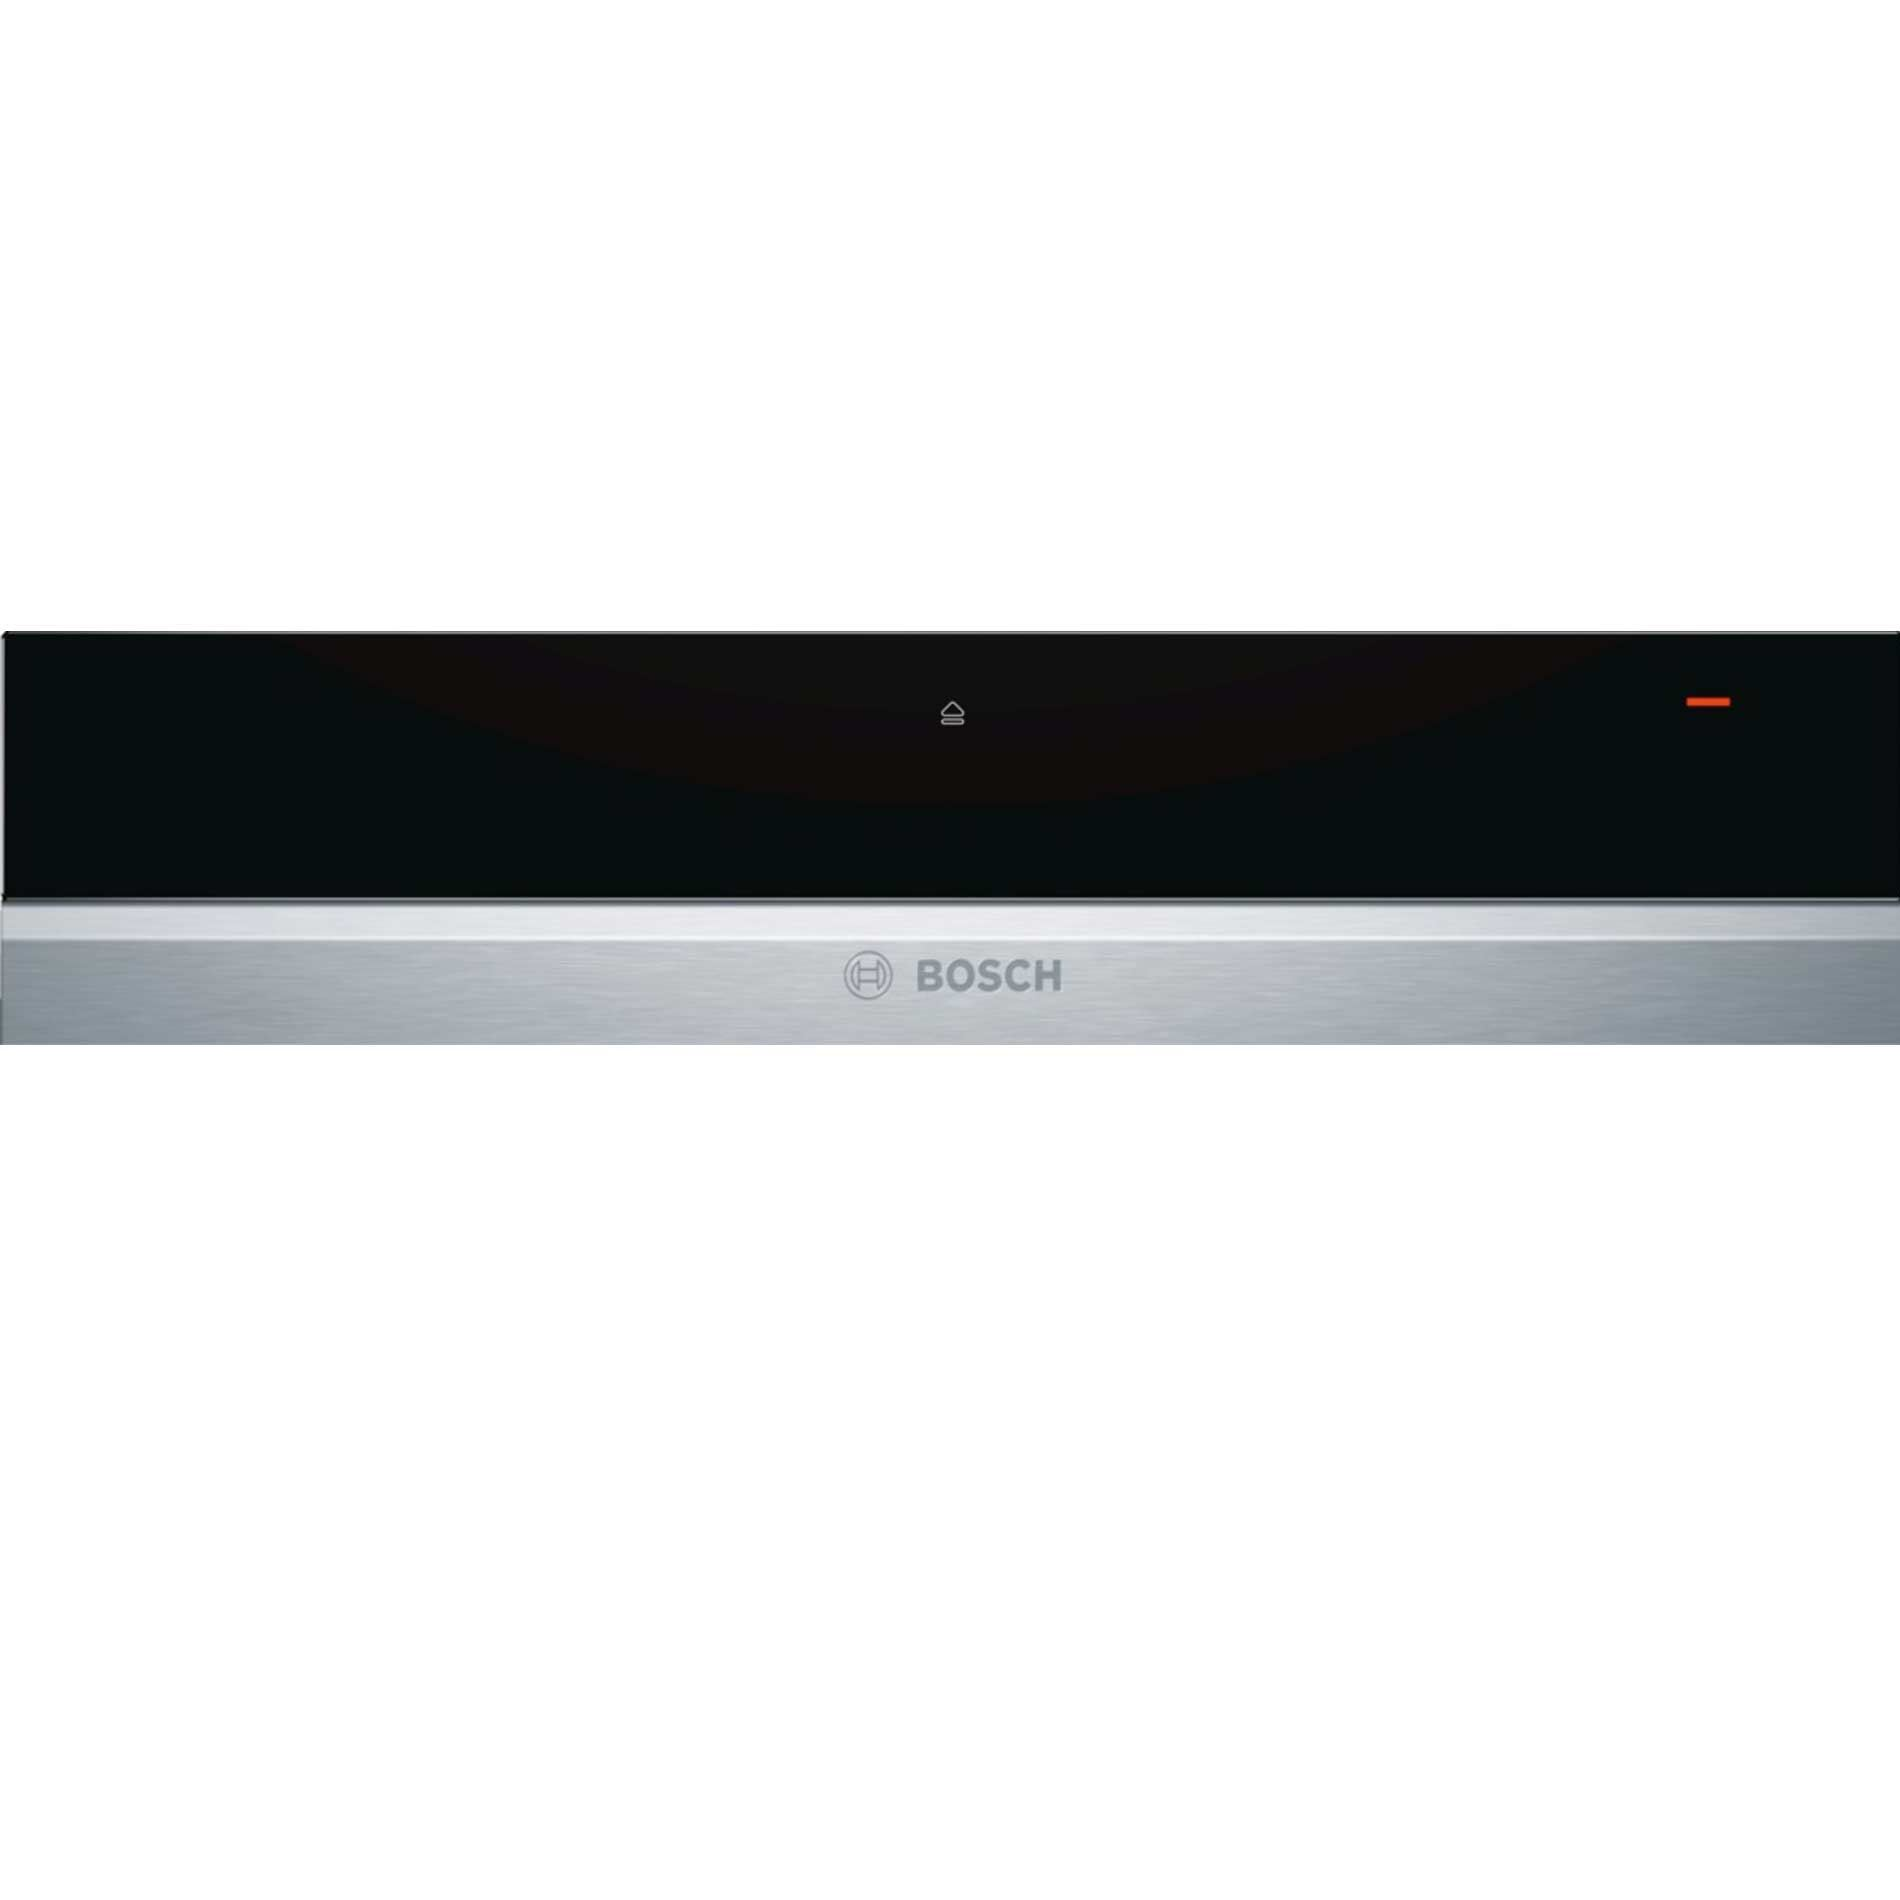 Appliance Source Bosch Bic630ns1b Warming Drawer